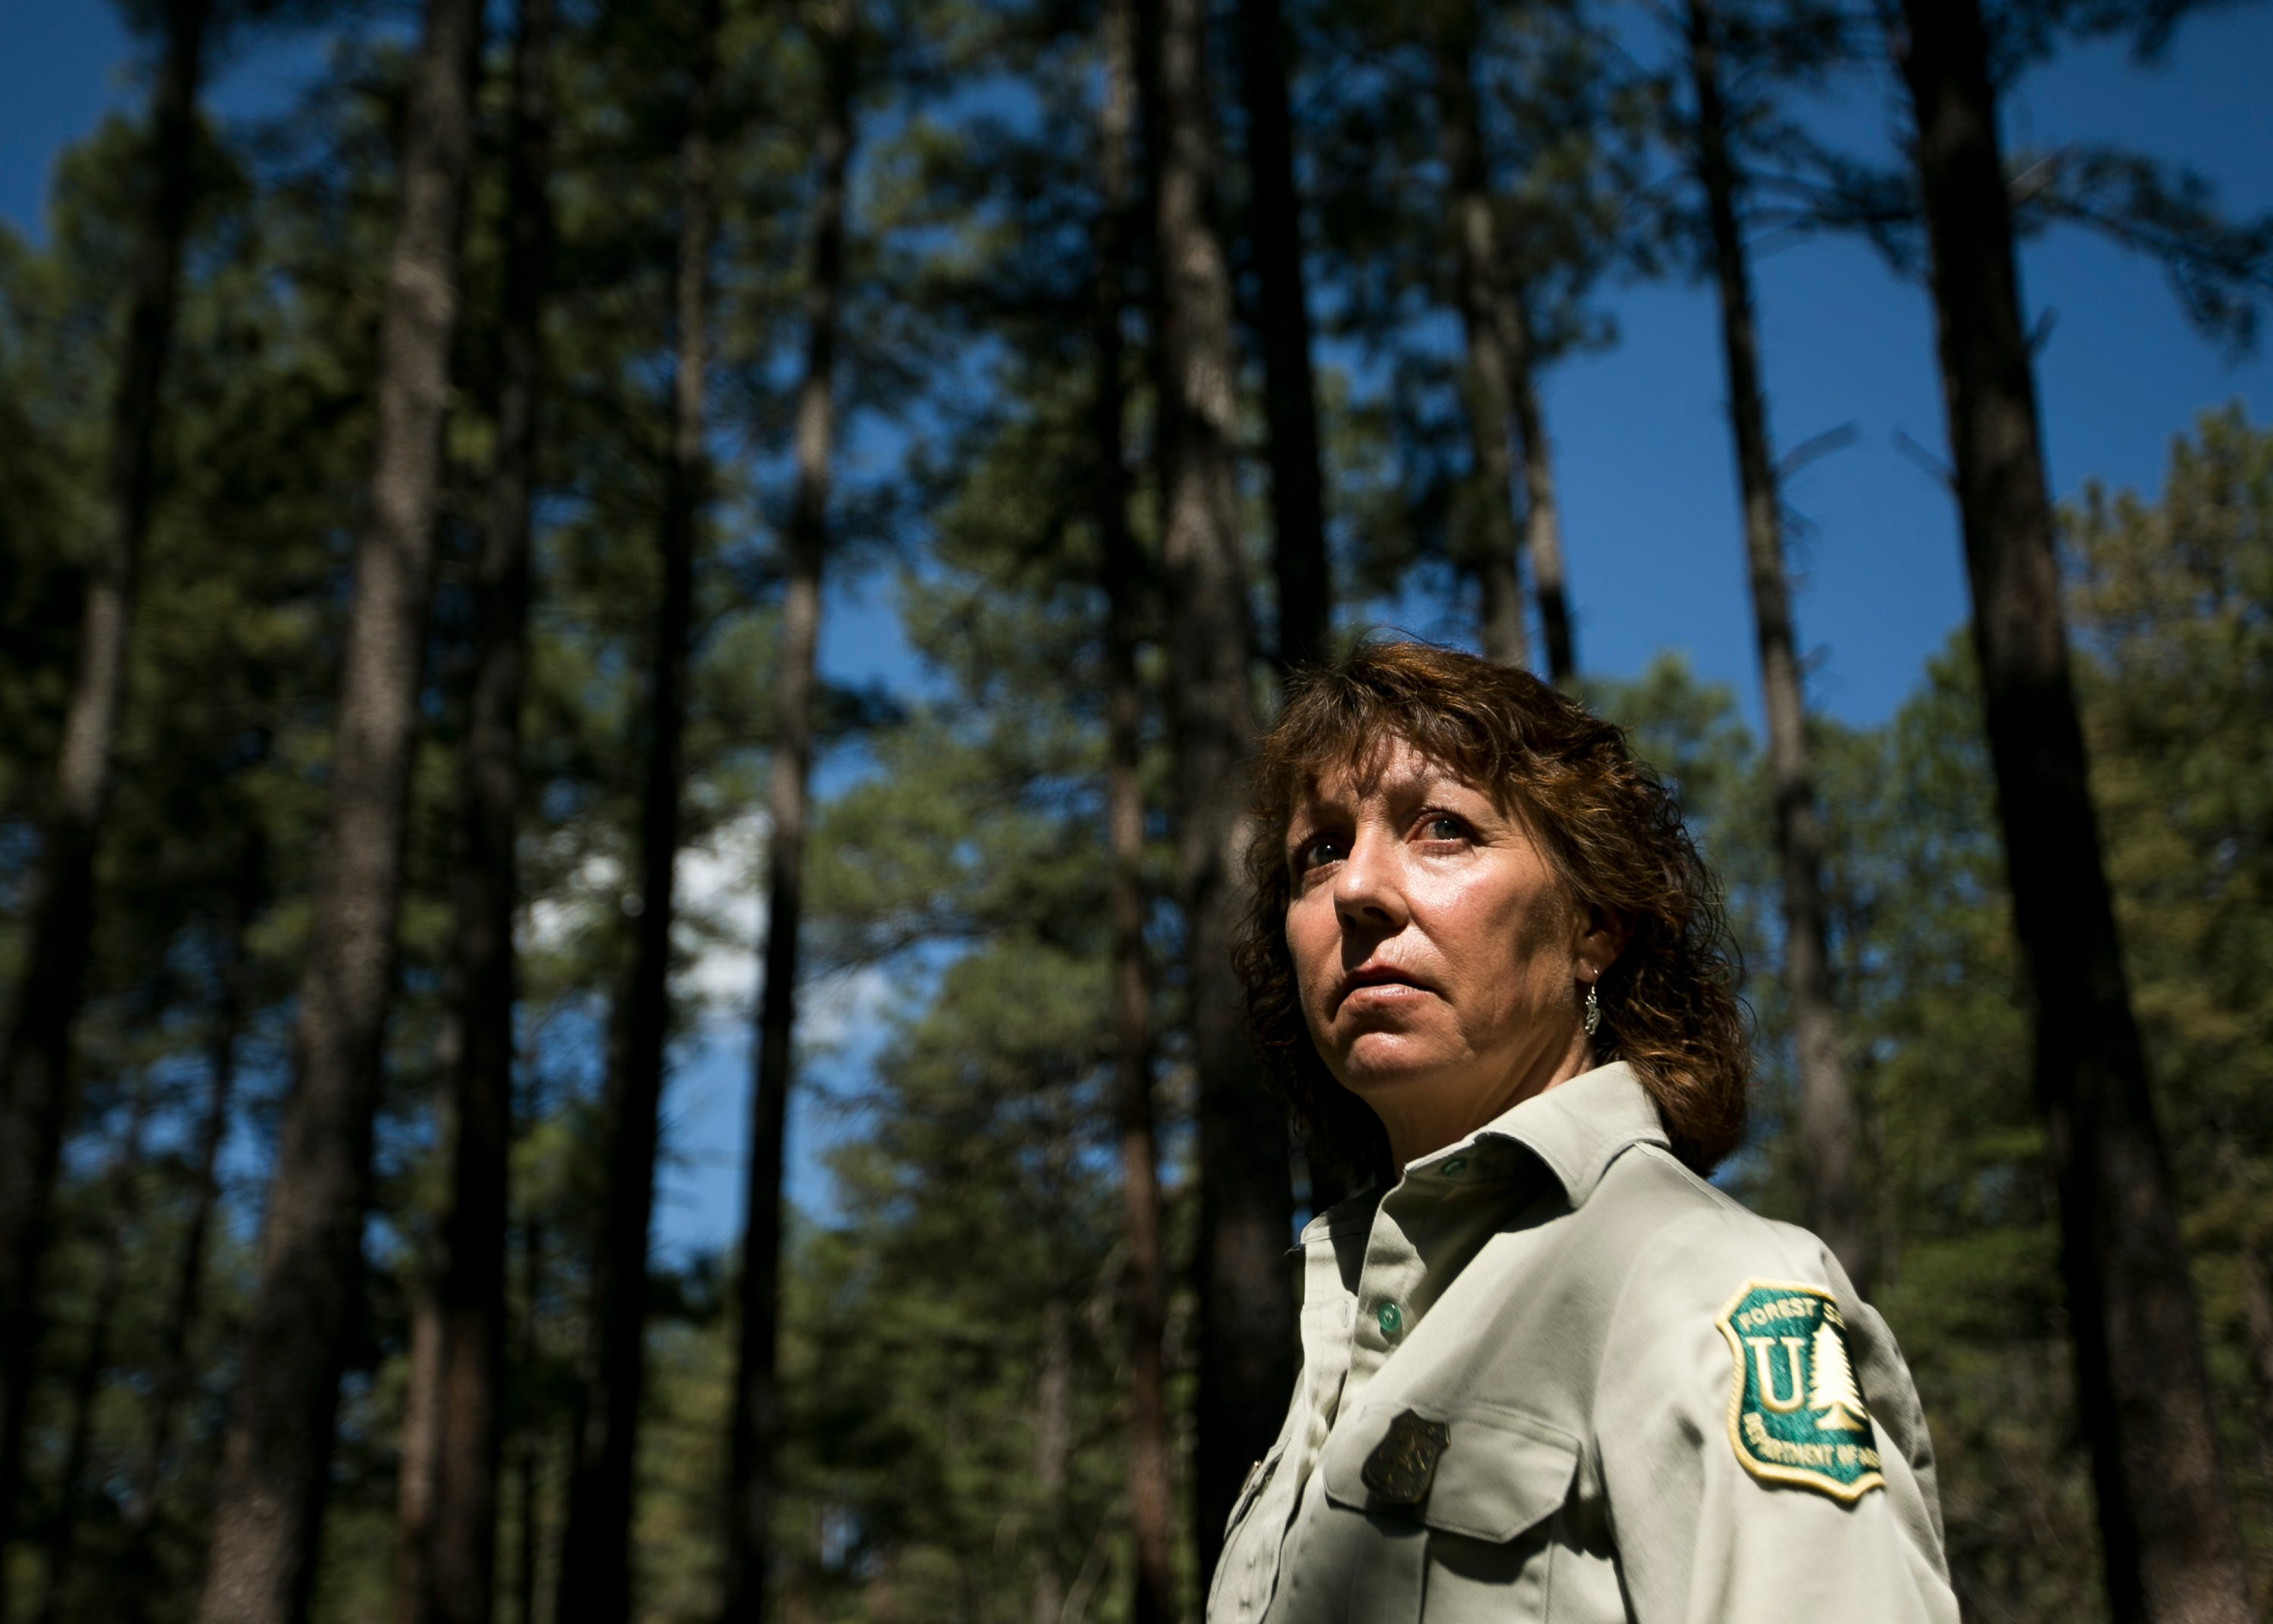 Jodie Canfield, a ranger with the U.S. Forest Service Smokey Bear District, stands in a grove of thinned trees in Ruidoso, New Mexico, on May 31, 2019.